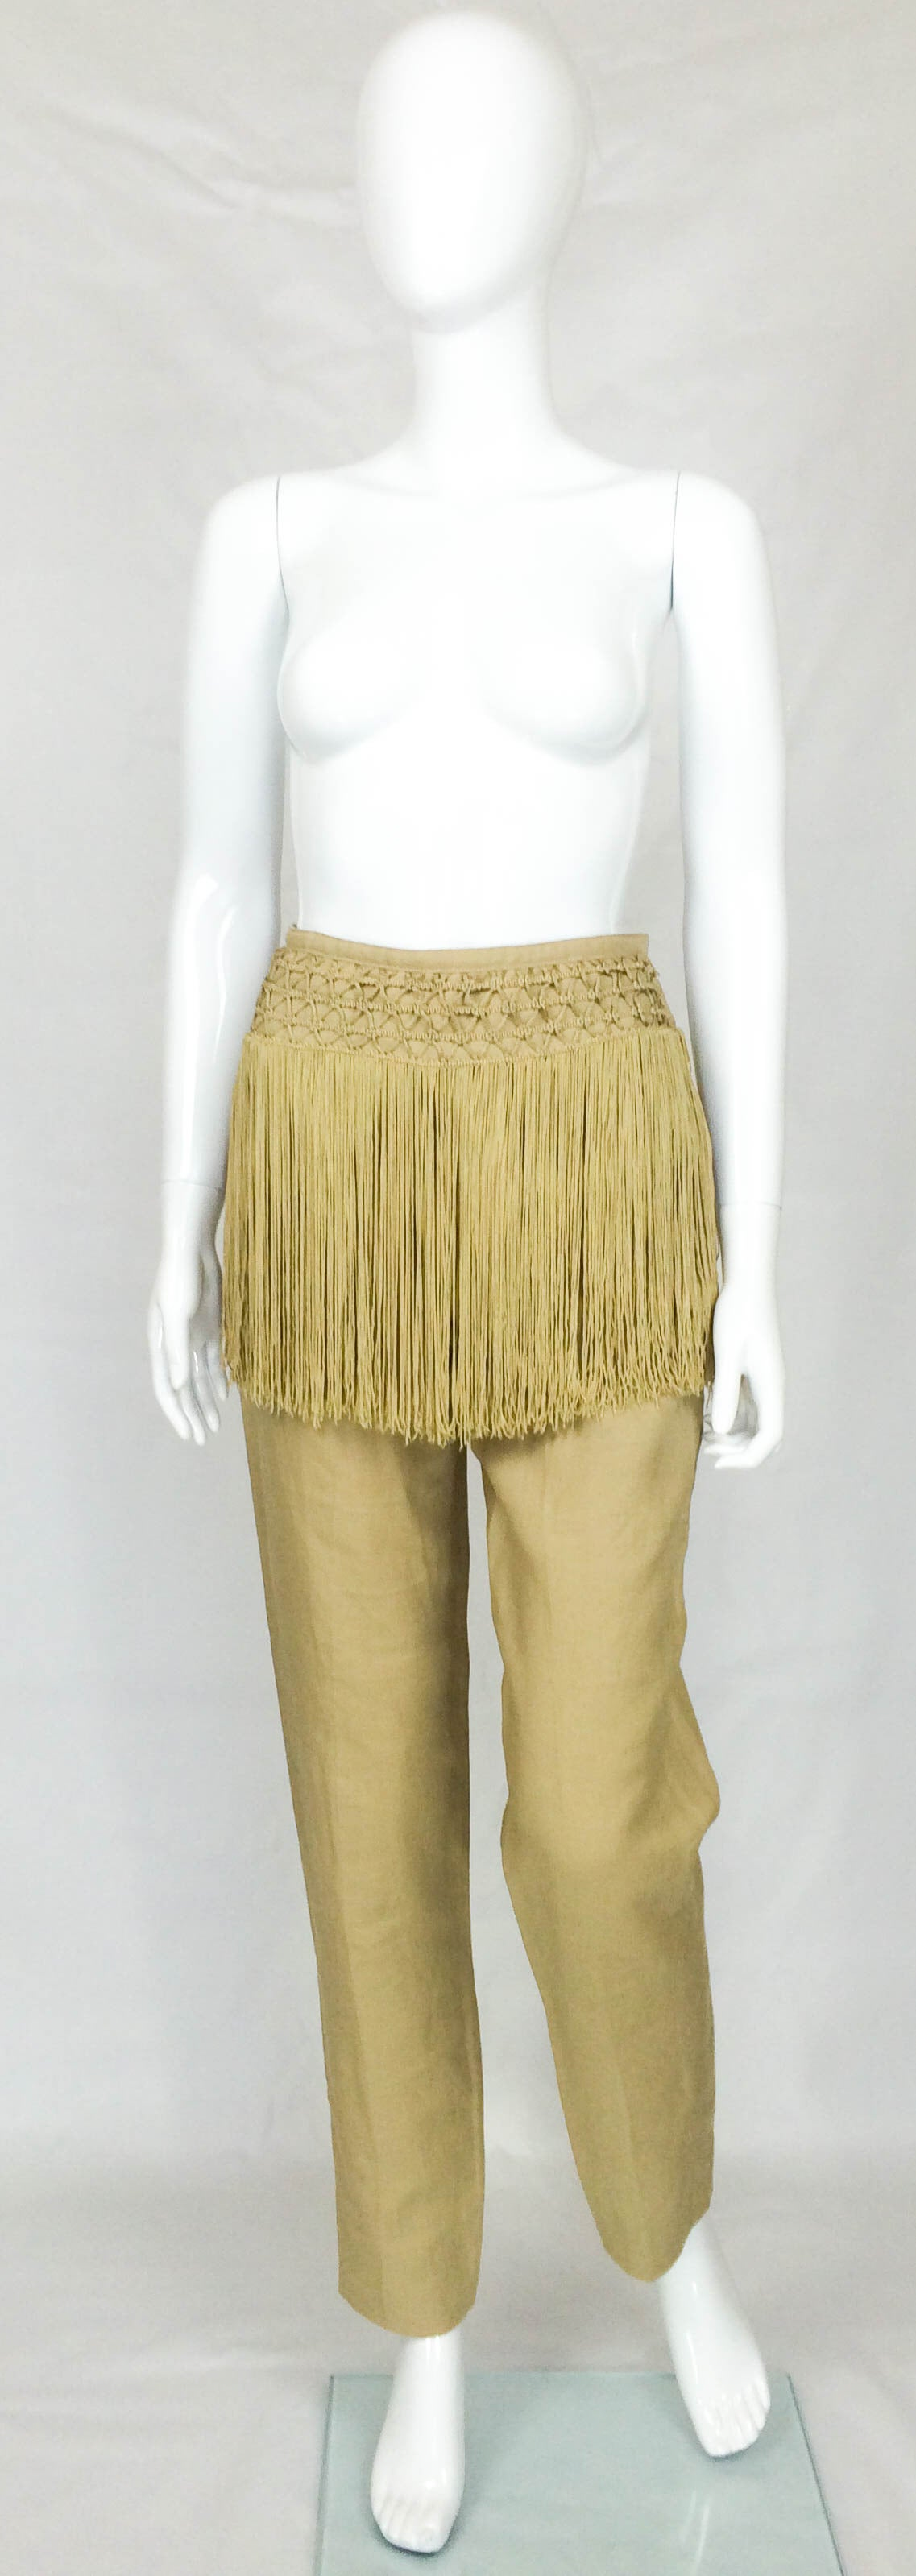 Valentino Fringed Linen Pants - 1990s 2